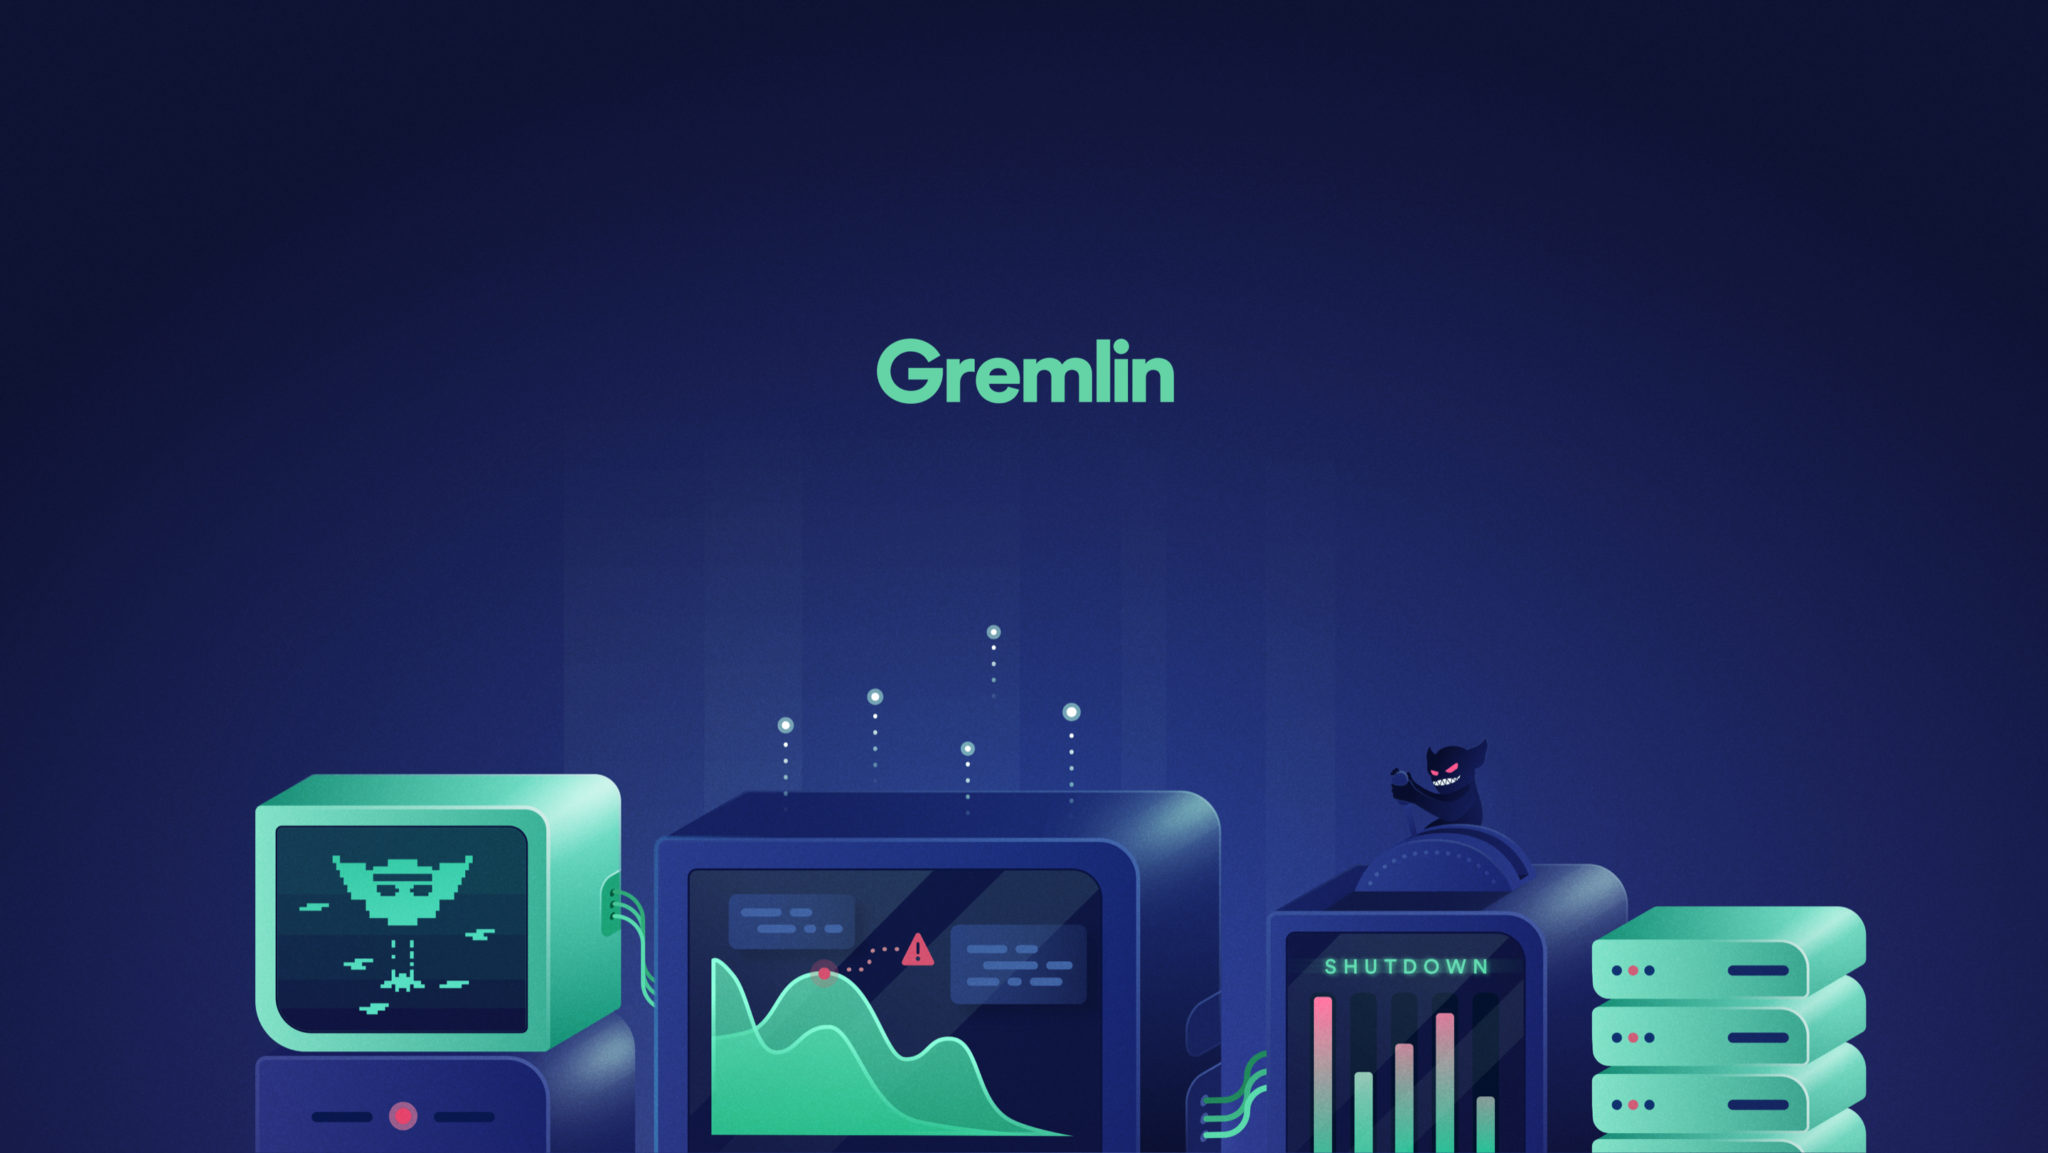 Illustration_10-Gremlin@2x